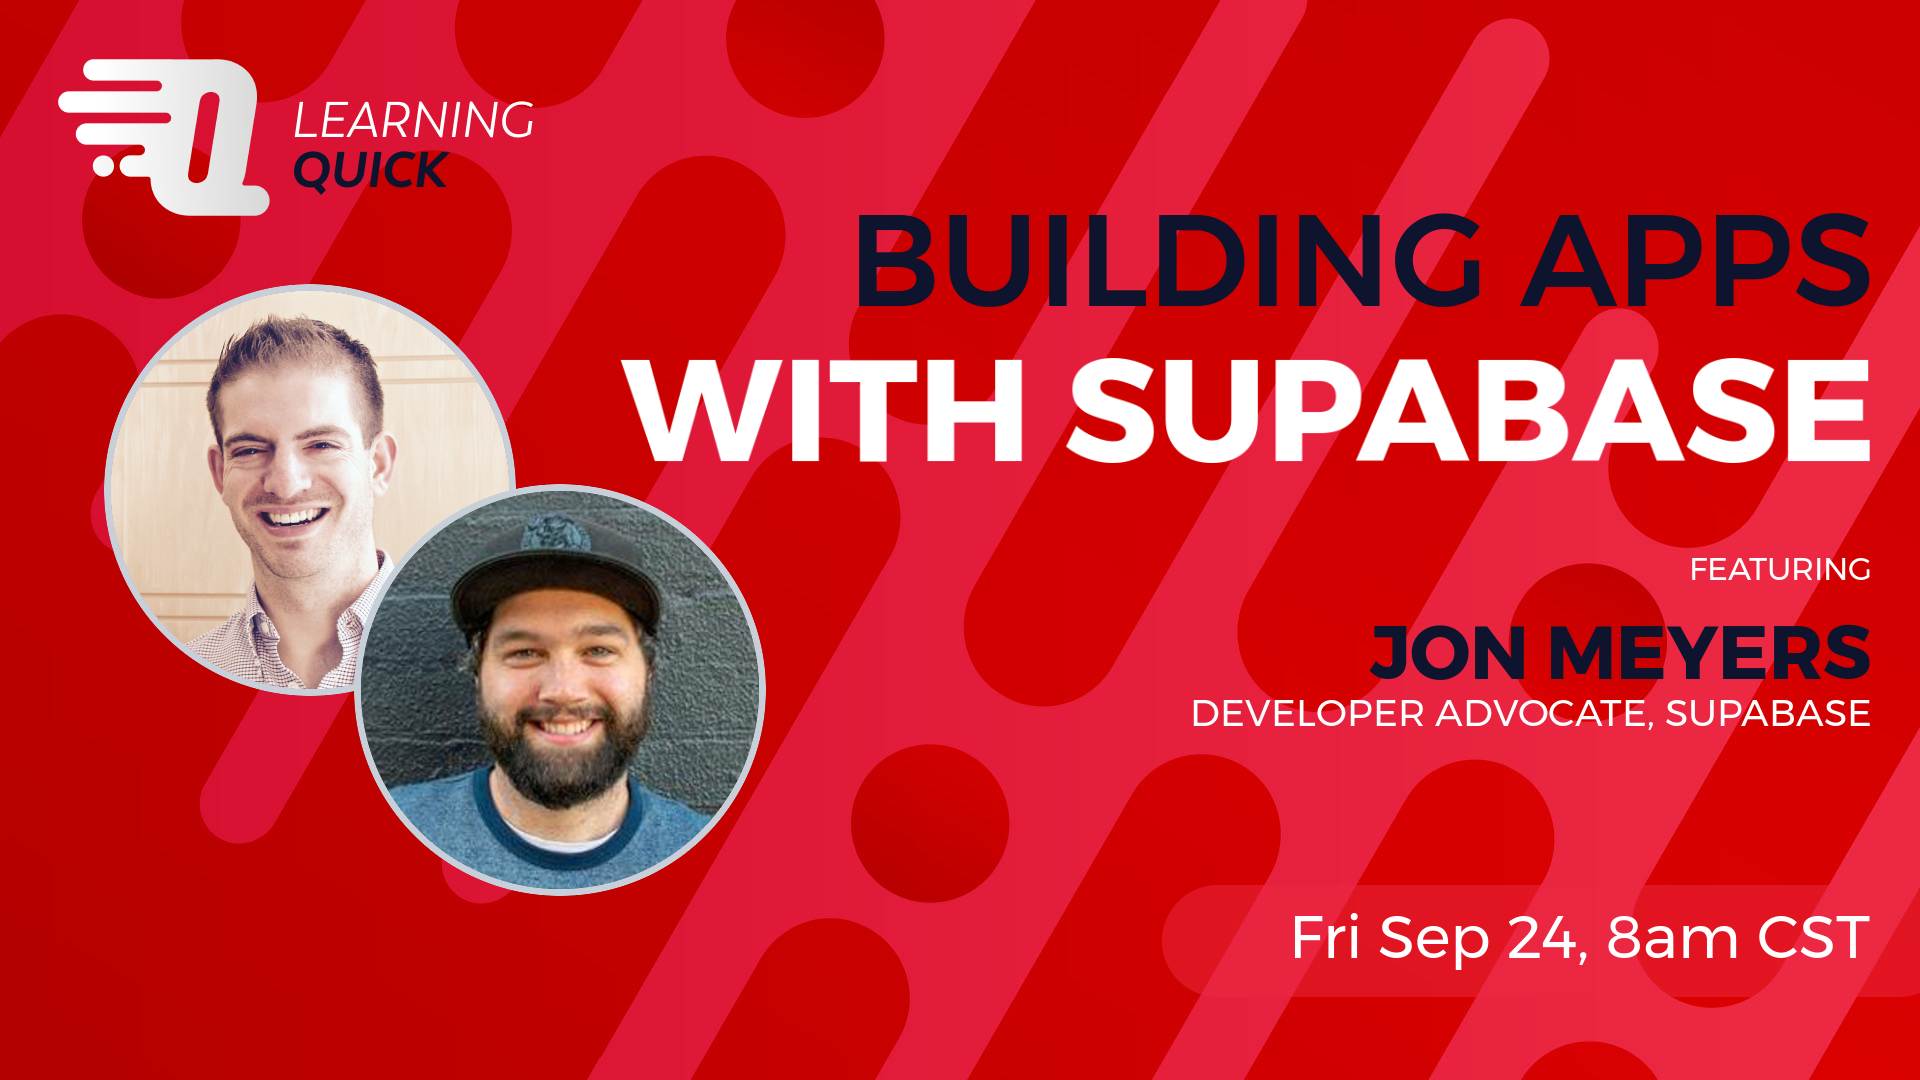 Building Apps With Supabase with Jon meyers